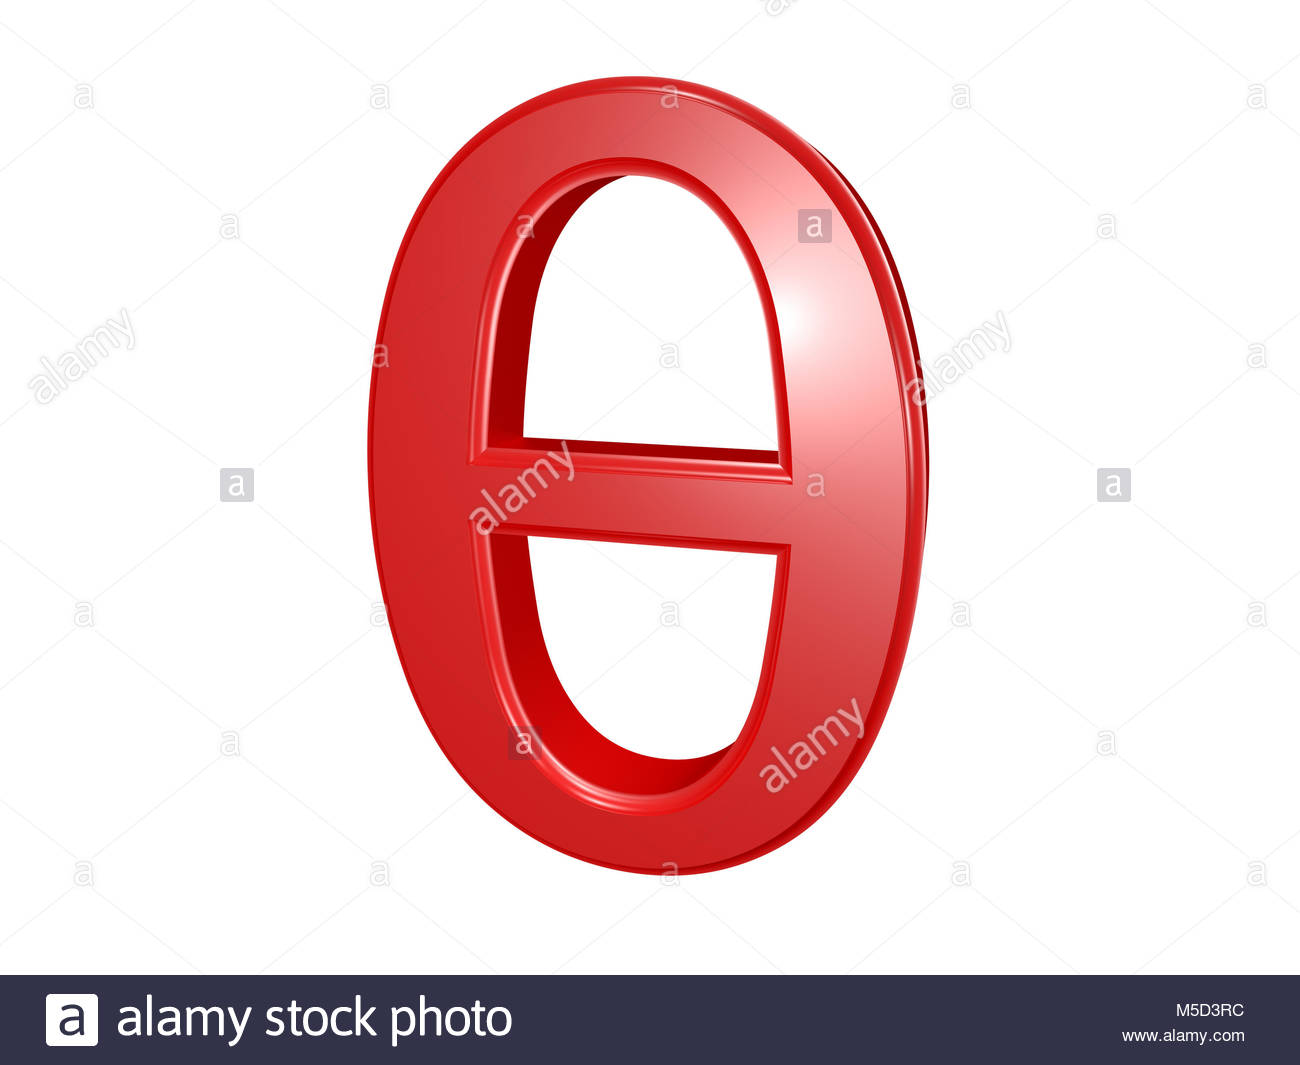 Theta greek letter isolated on white 3d illustration stock theta greek letter isolated on white 3d illustration biocorpaavc Image collections